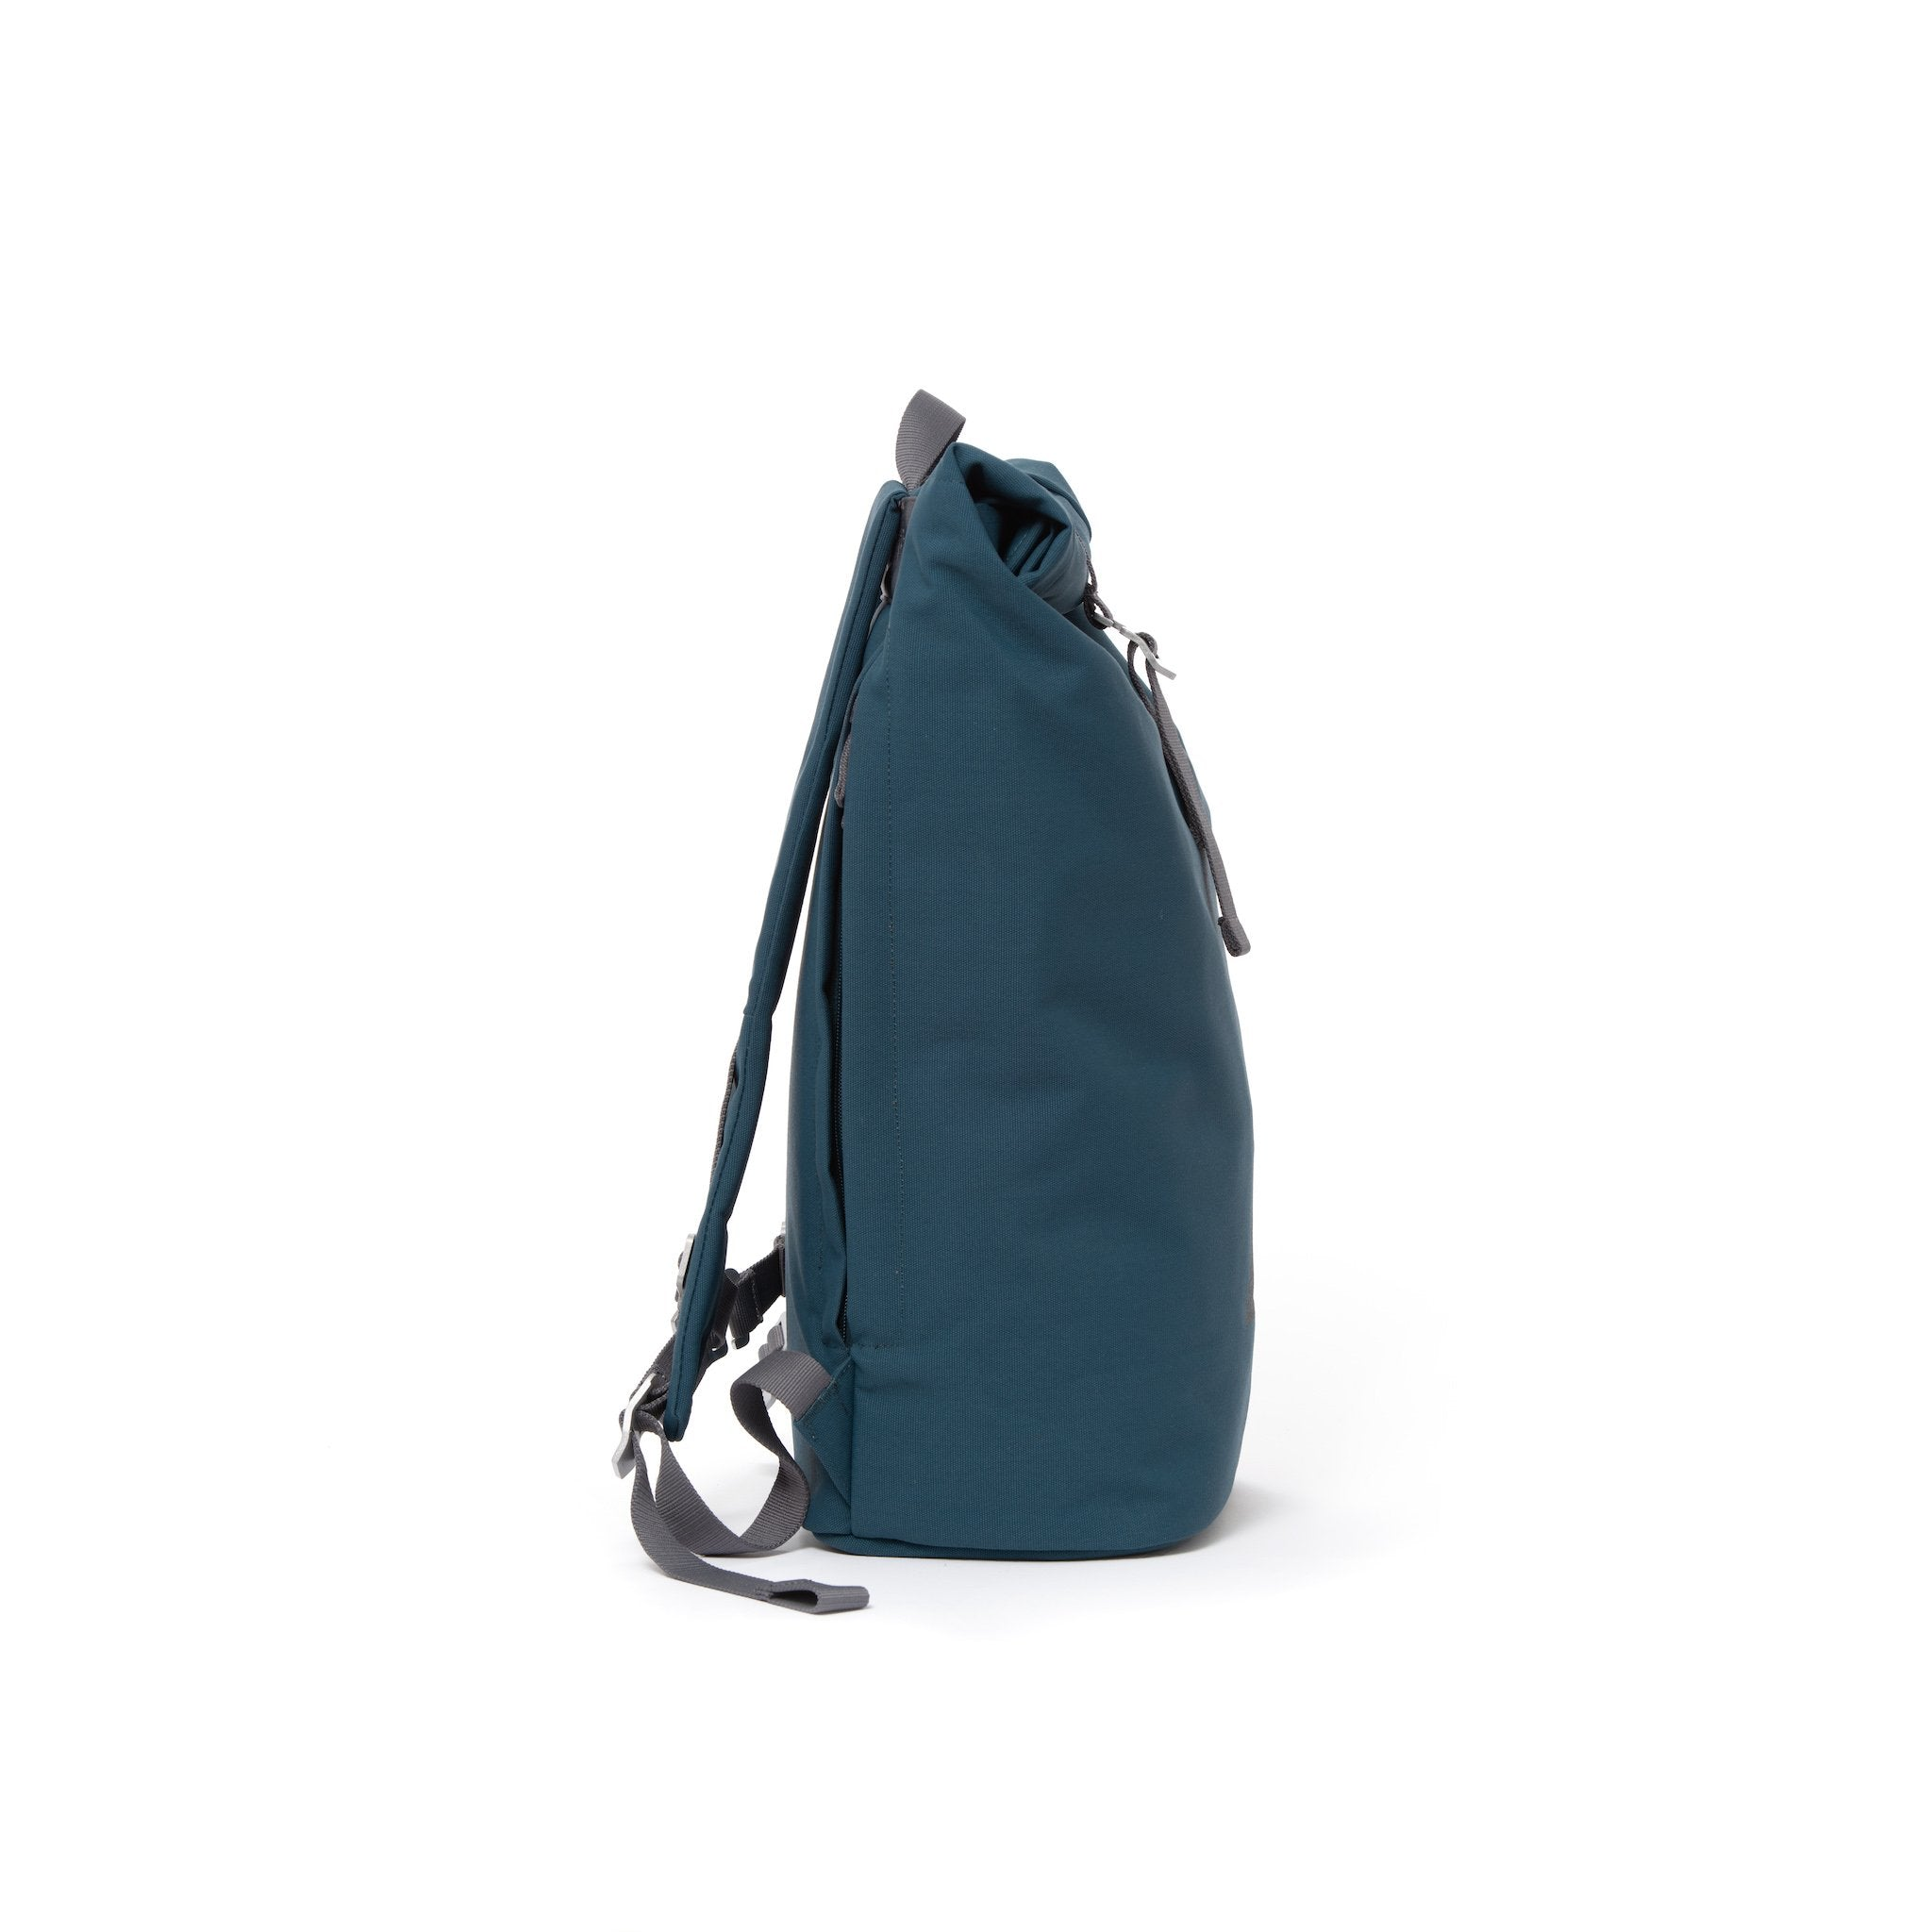 Blue waterproof canvas men's rolltop backpack.